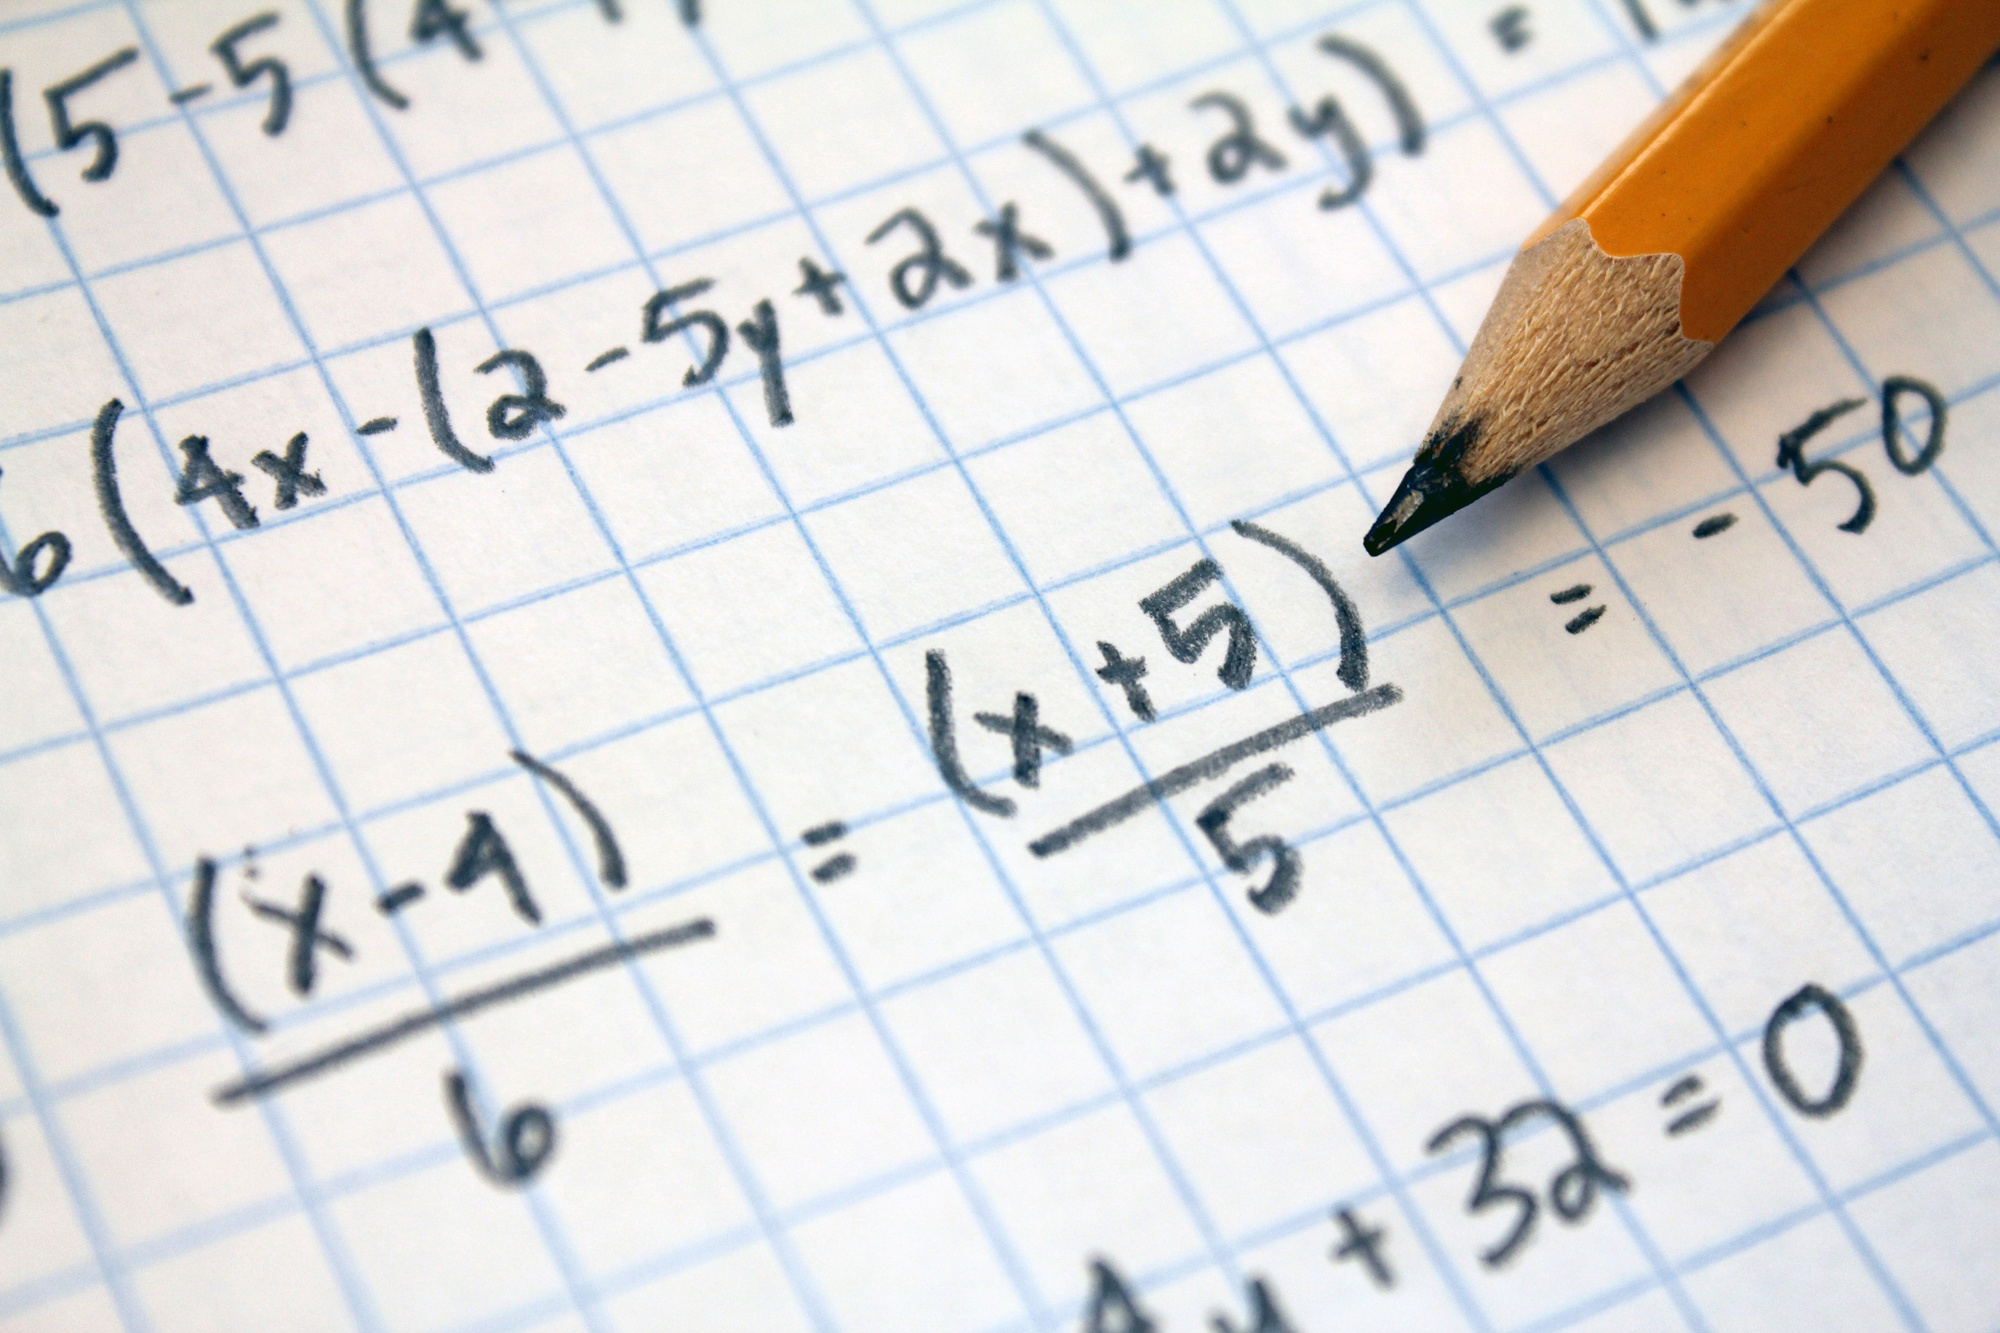 solving math equations in graph paper